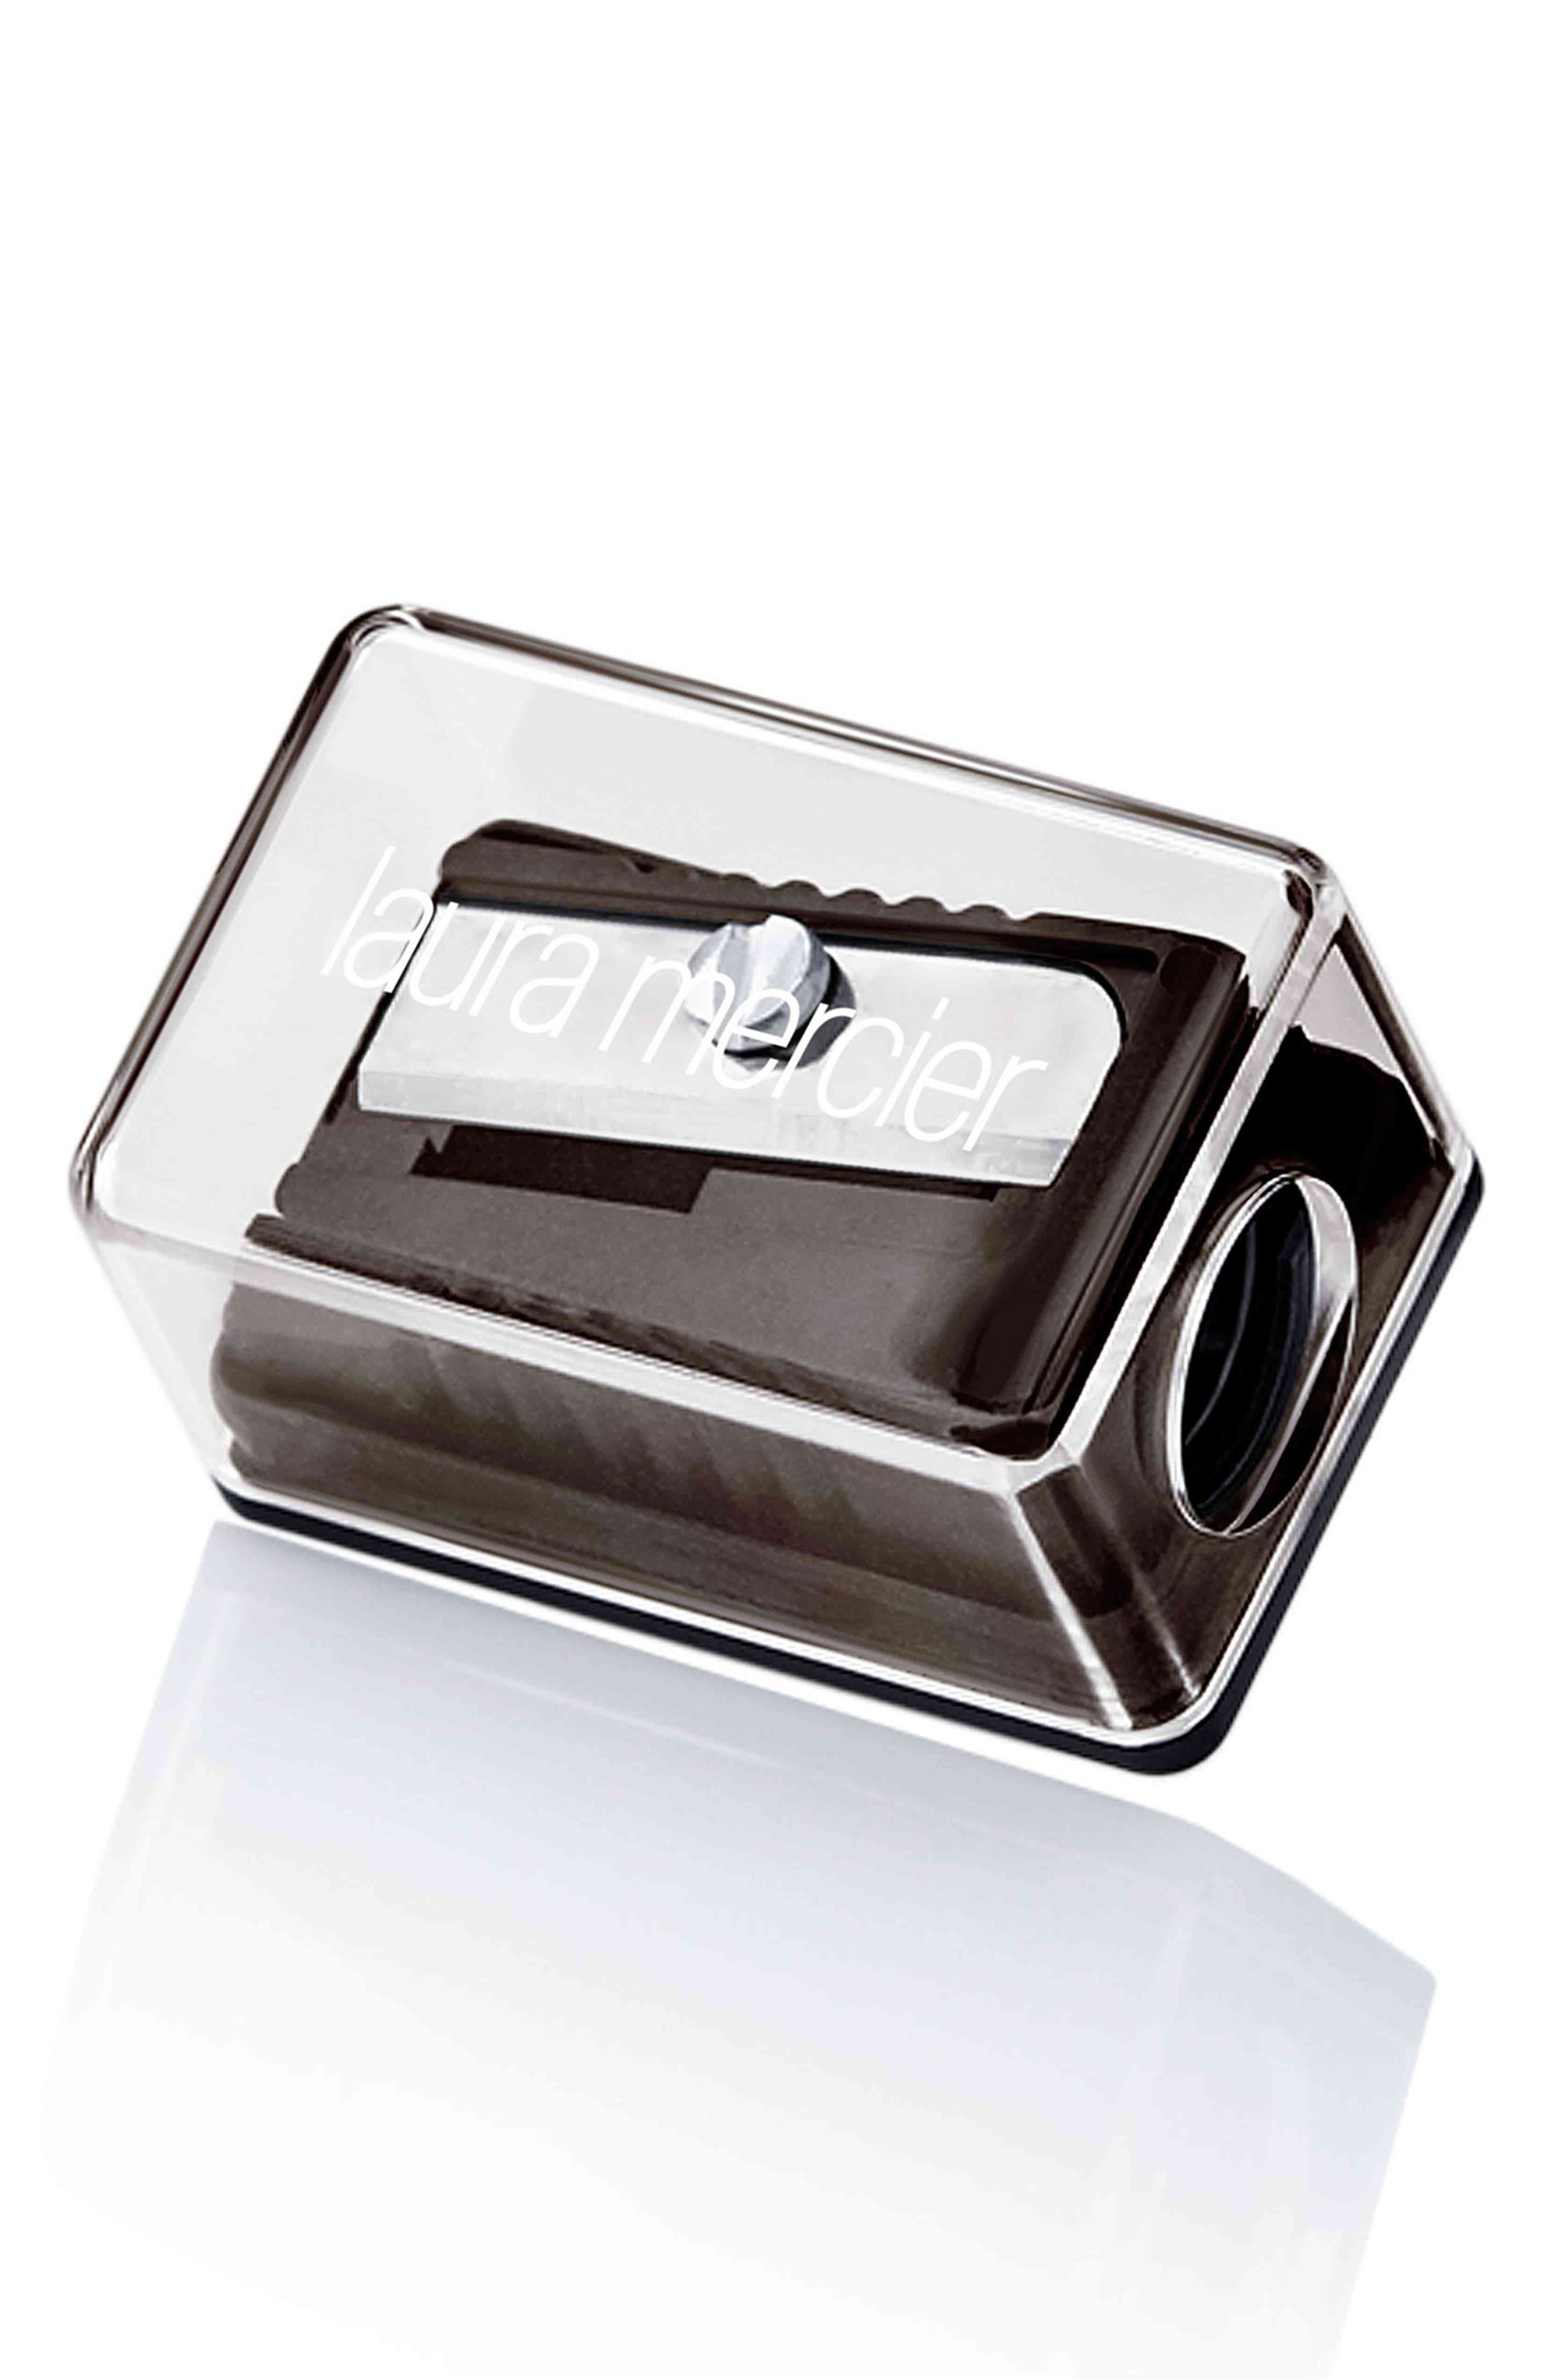 the 12 best eye pencil sharpeners of 2021